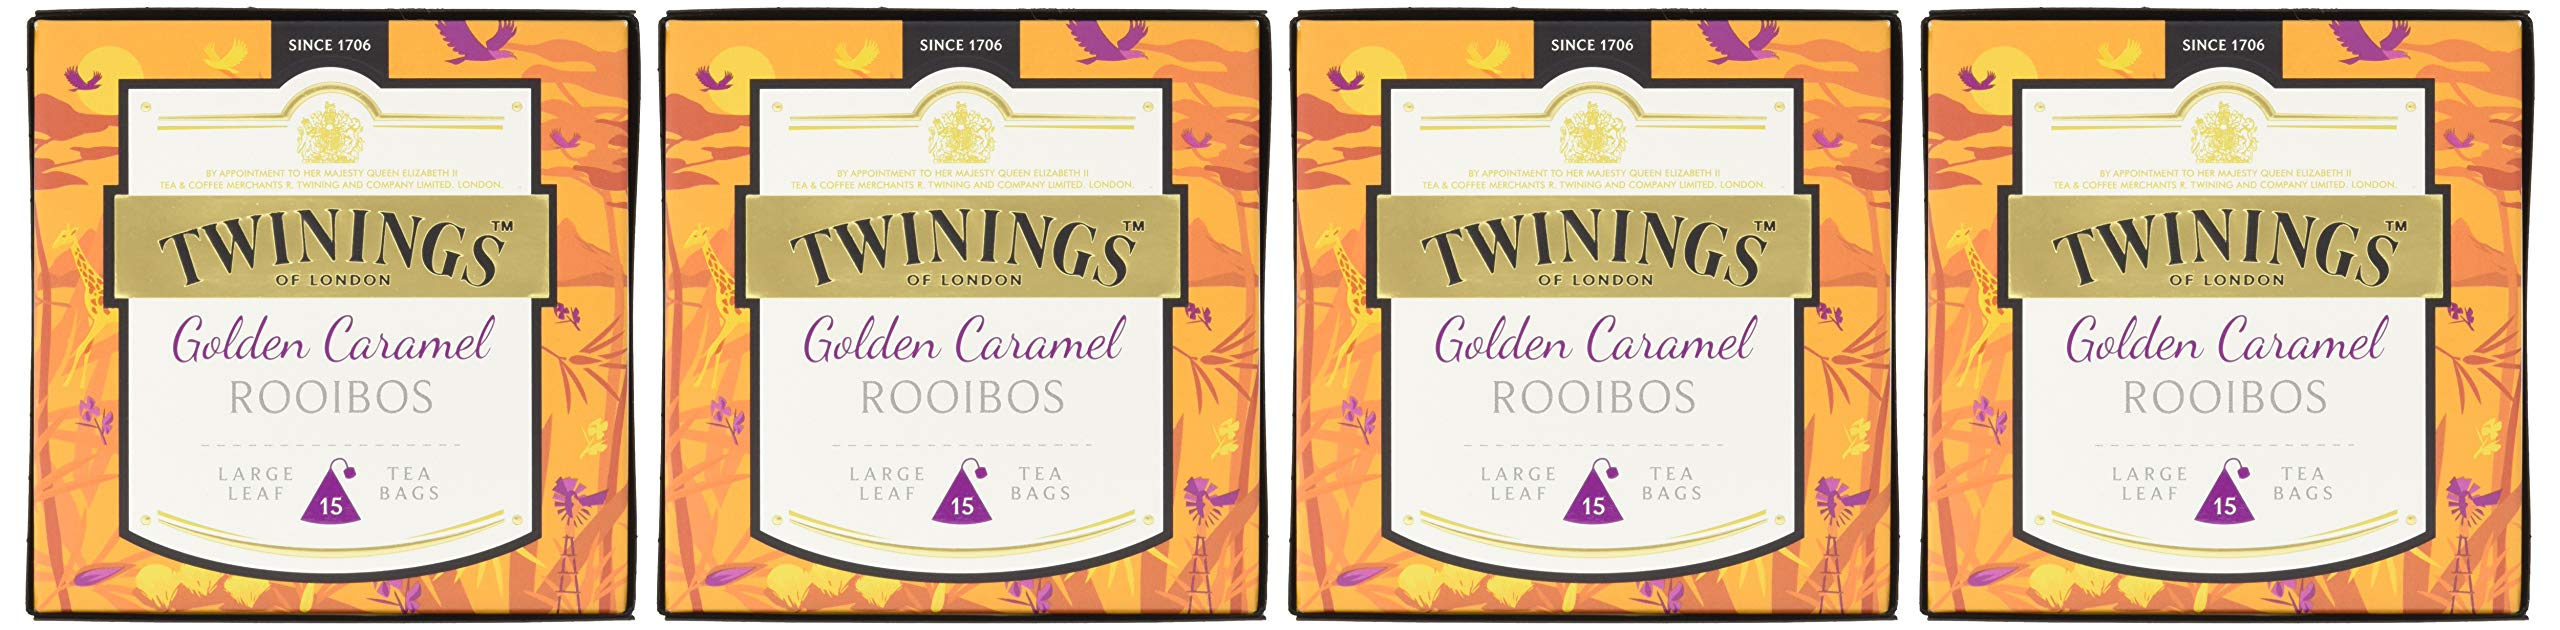 Twinings-Golden-Caramel-Rooibos-4er-Pack-4-x-38-g